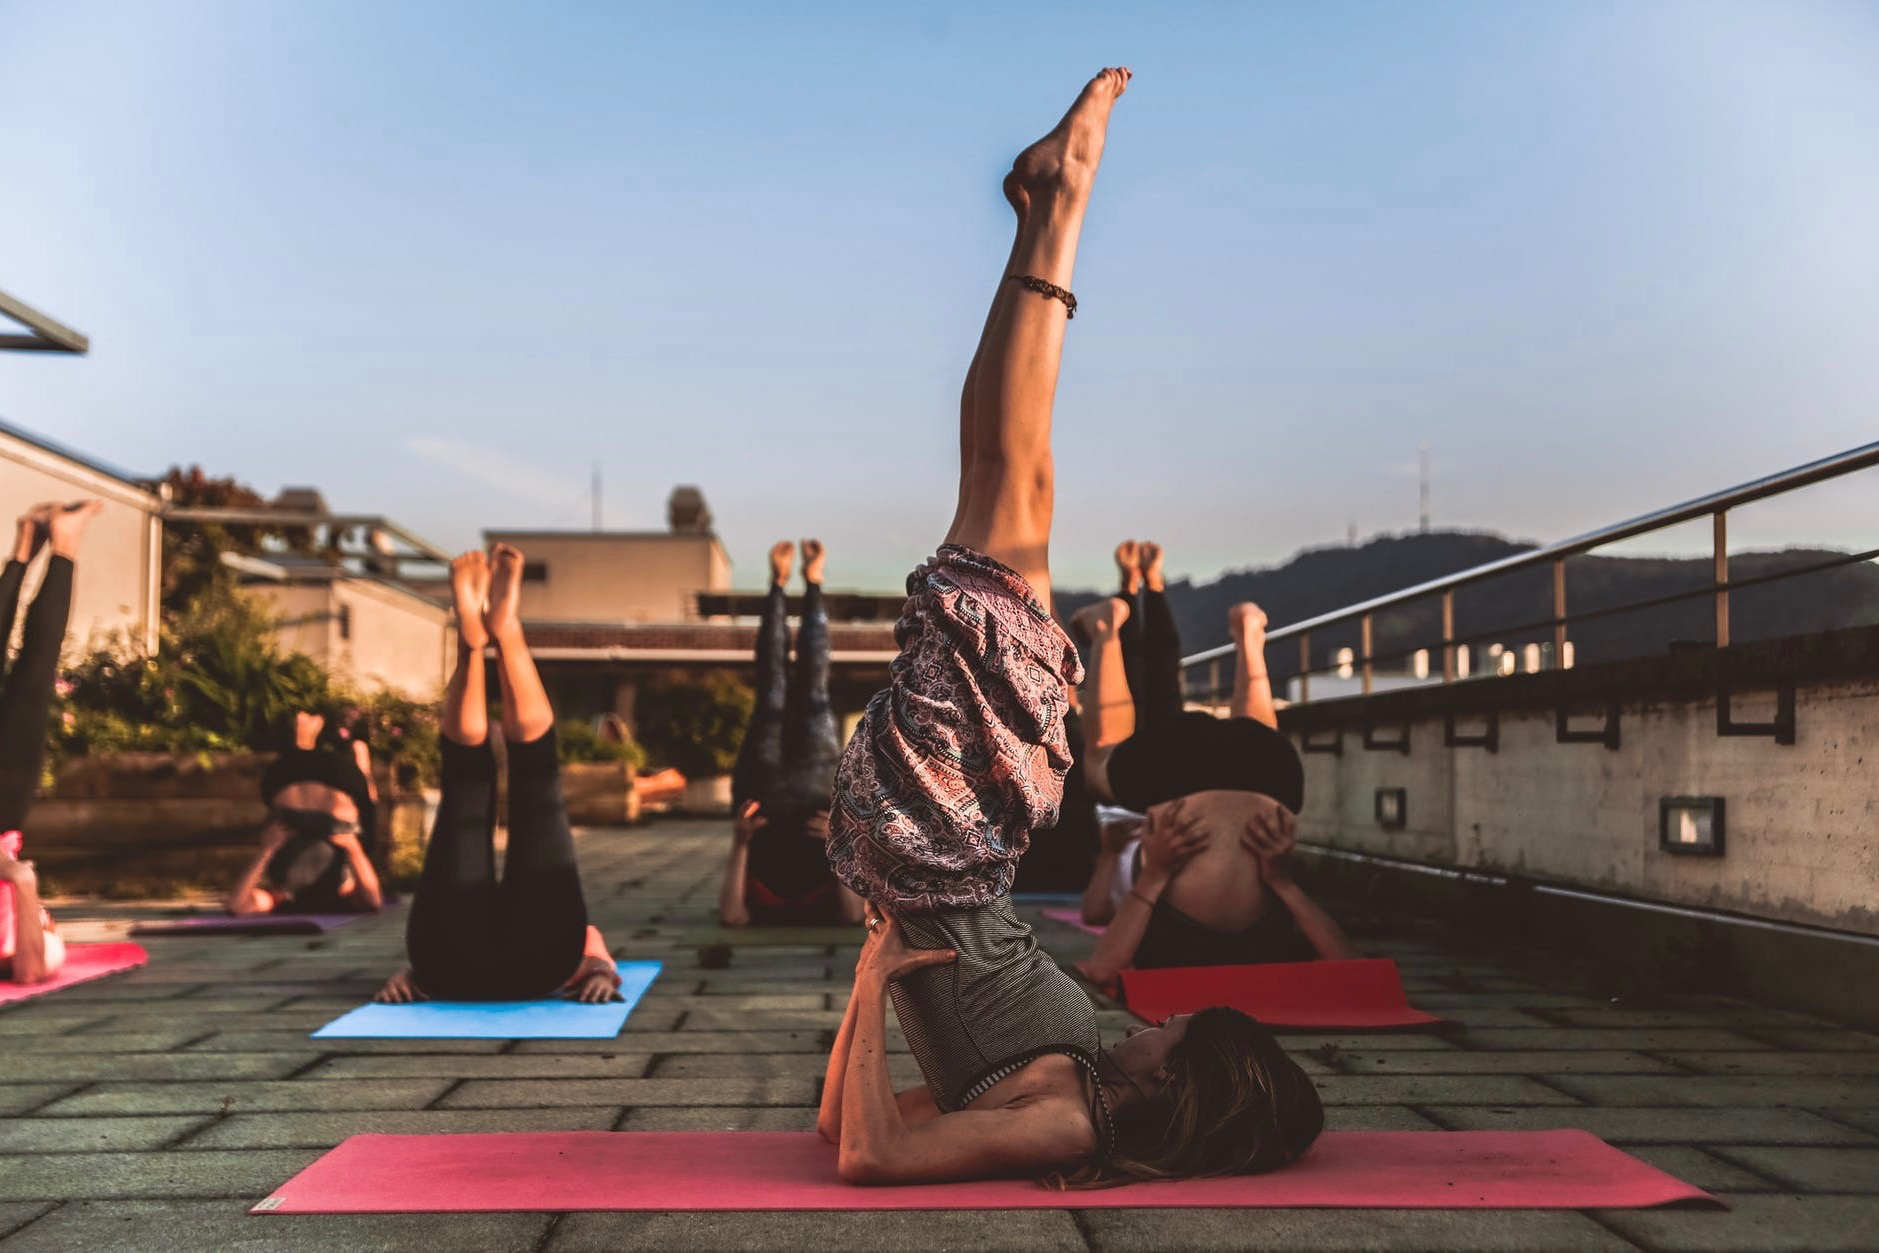 #Nutrition Tips For You: What Kind Of Food Should You Have Before And After Yoga